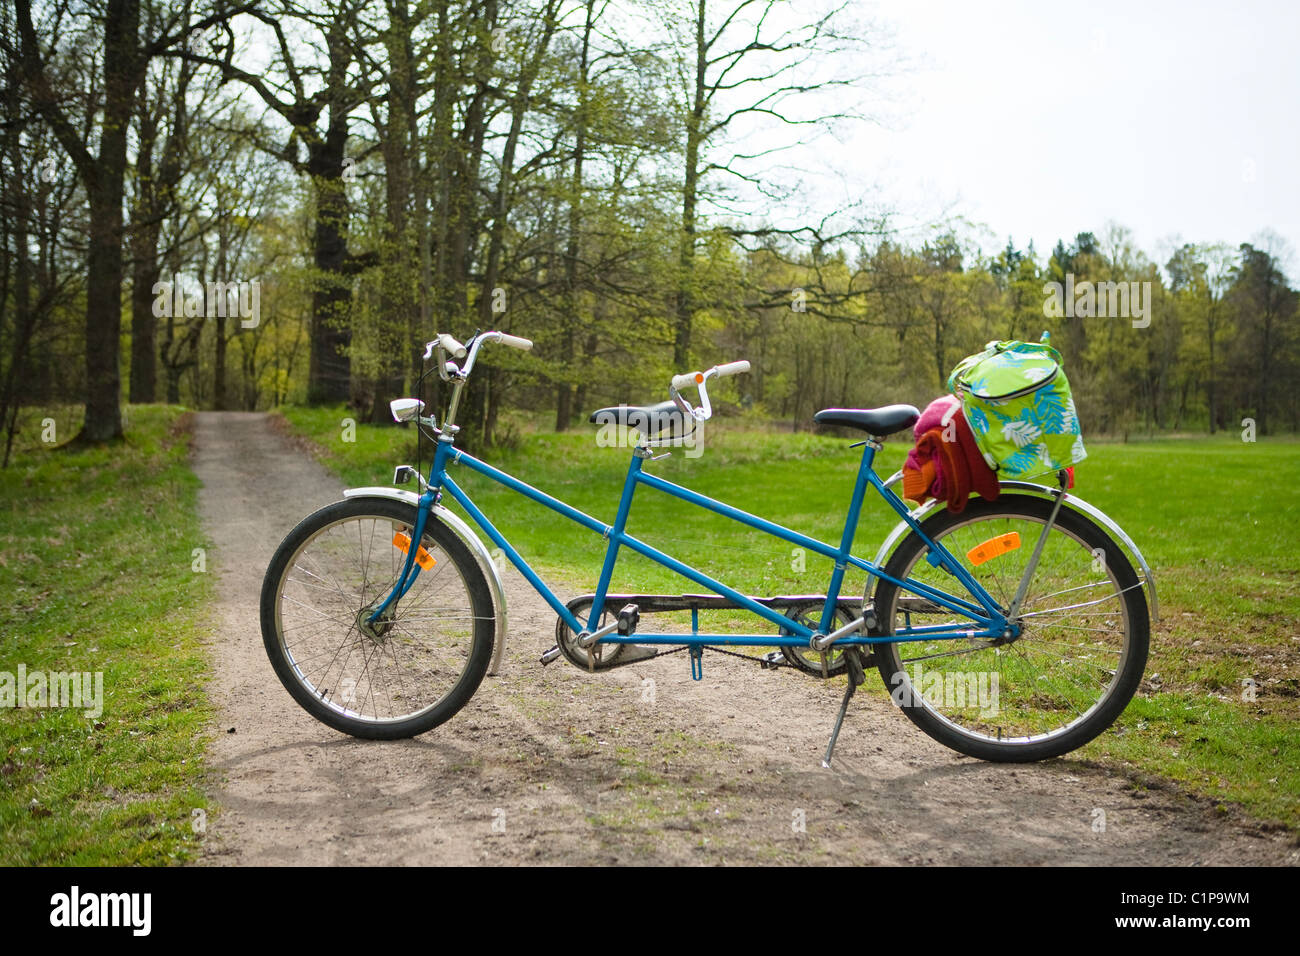 Tandem bike in forest - Stock Image